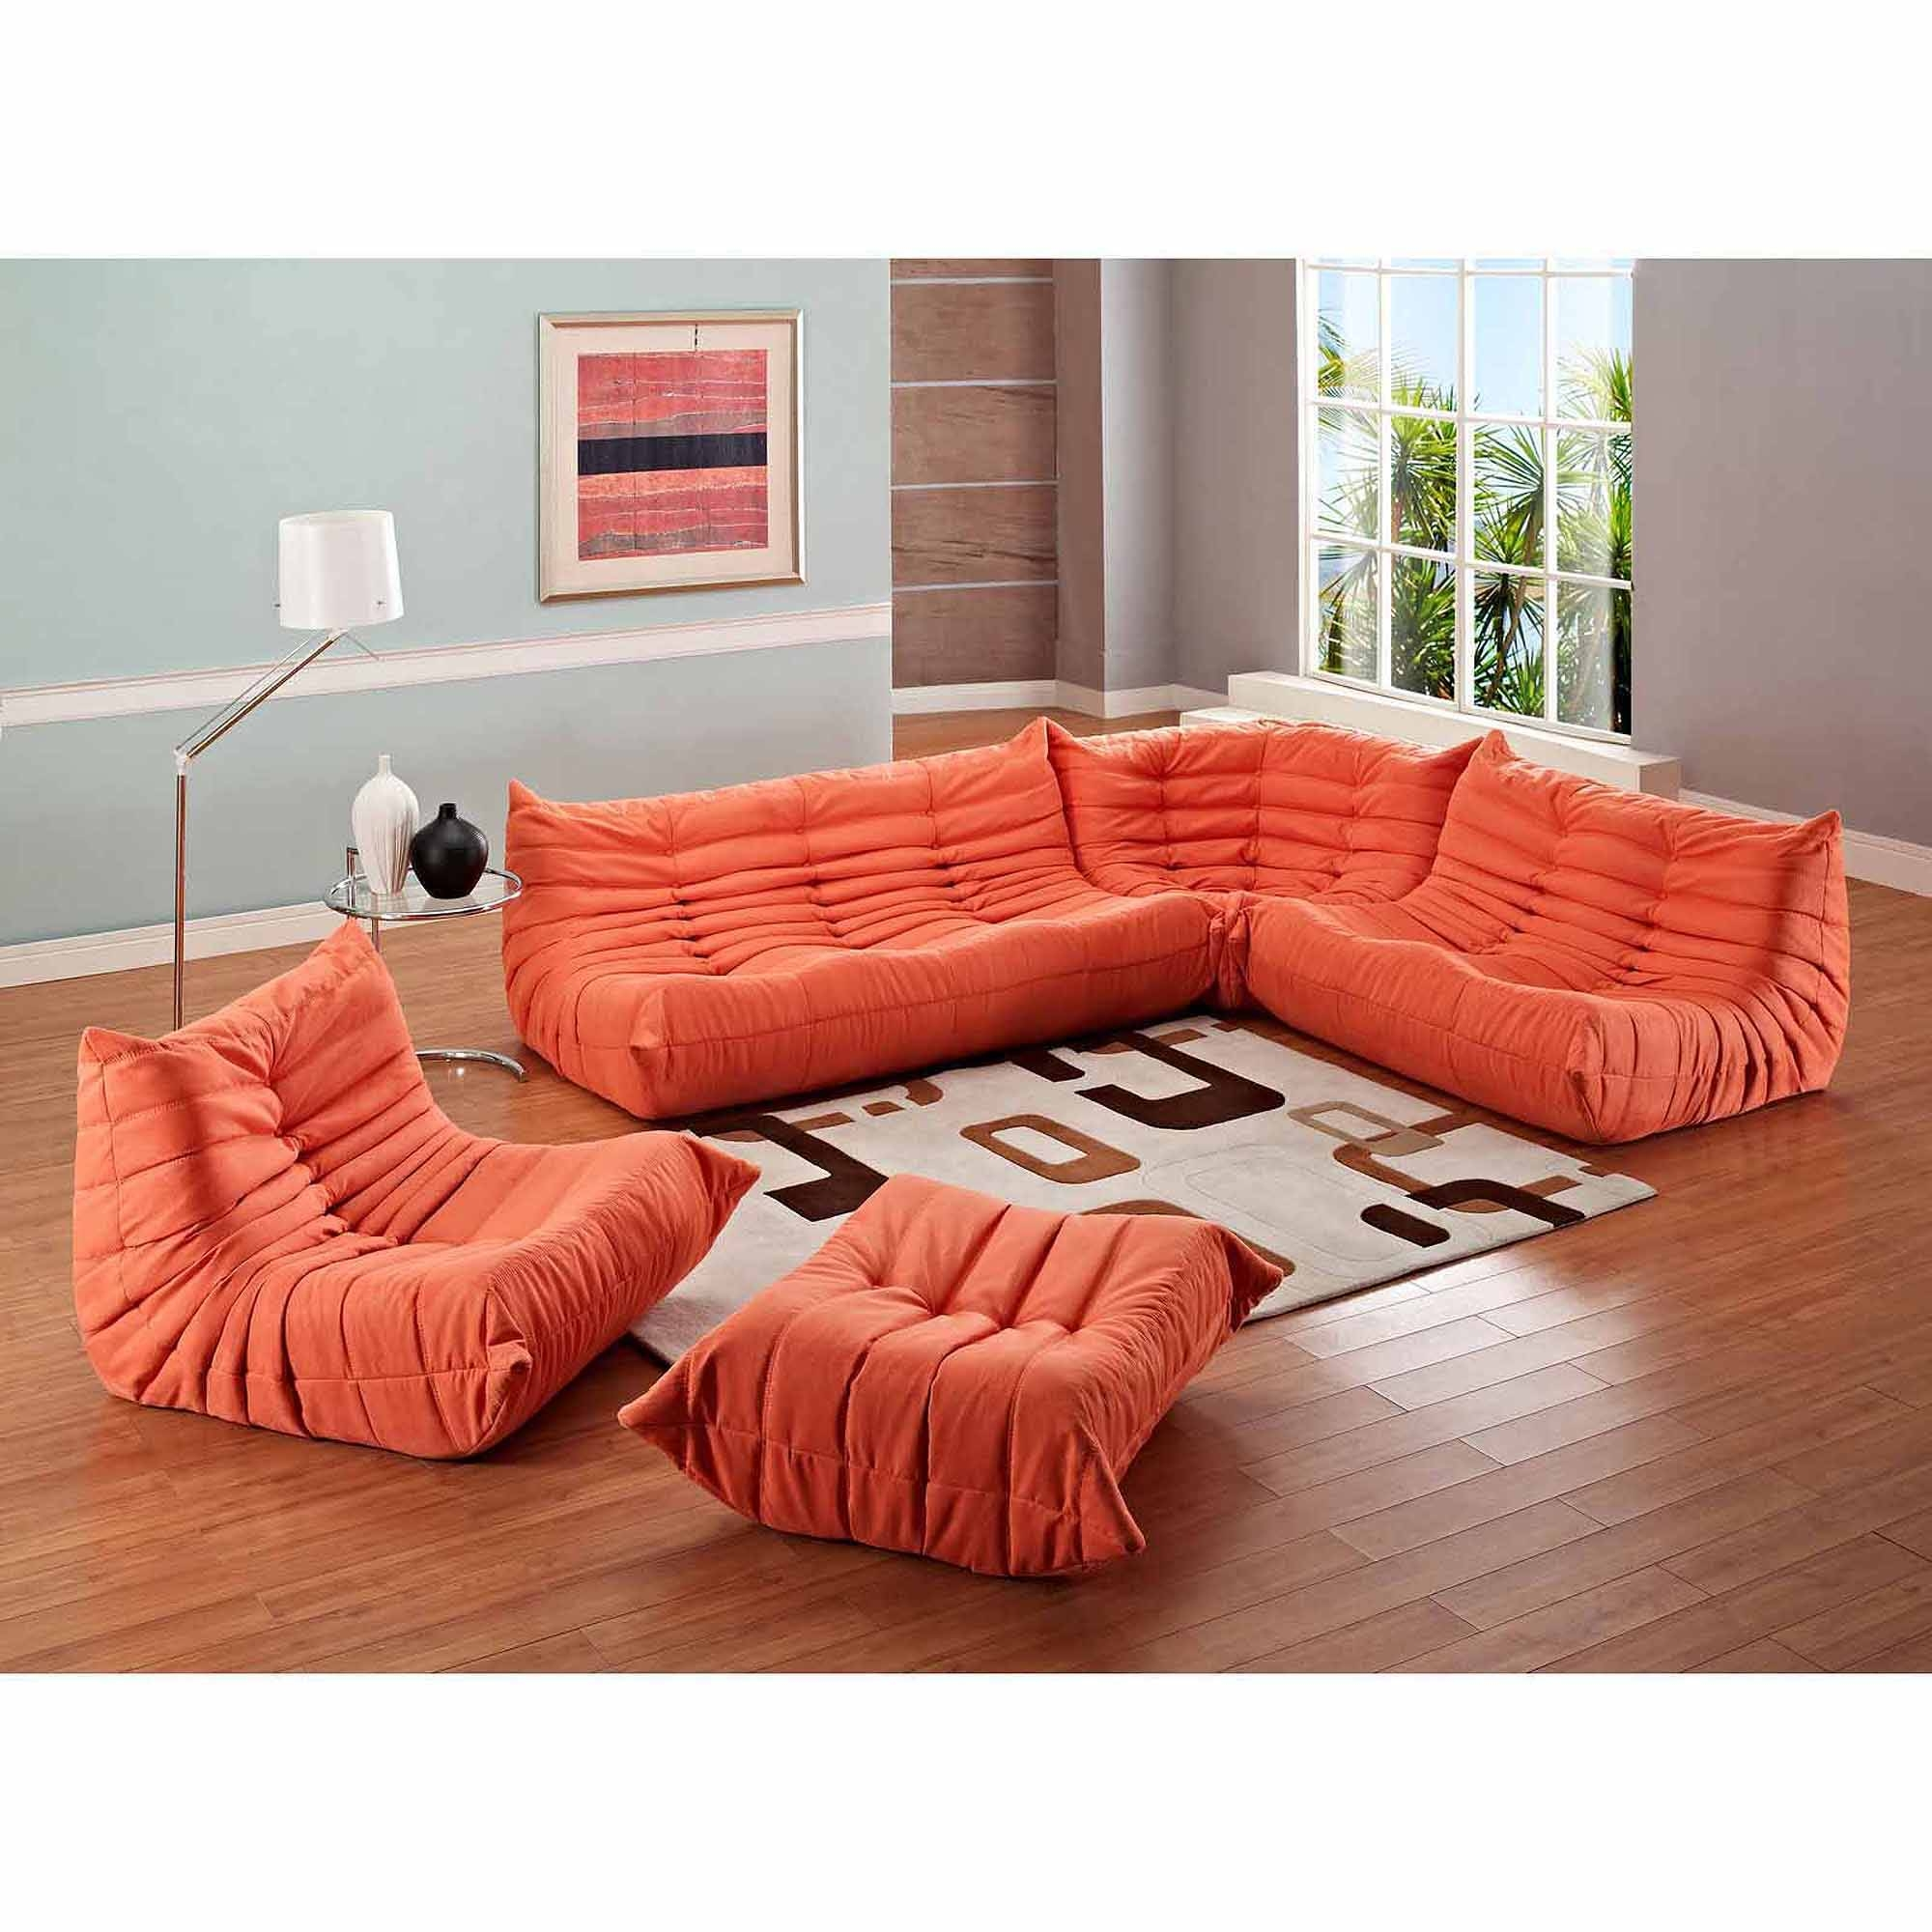 Modway Waverunner Modular Sectional Sofa Set (5 Piece) – Walmart Intended For Orange Sectional Sofa (View 27 of 30)